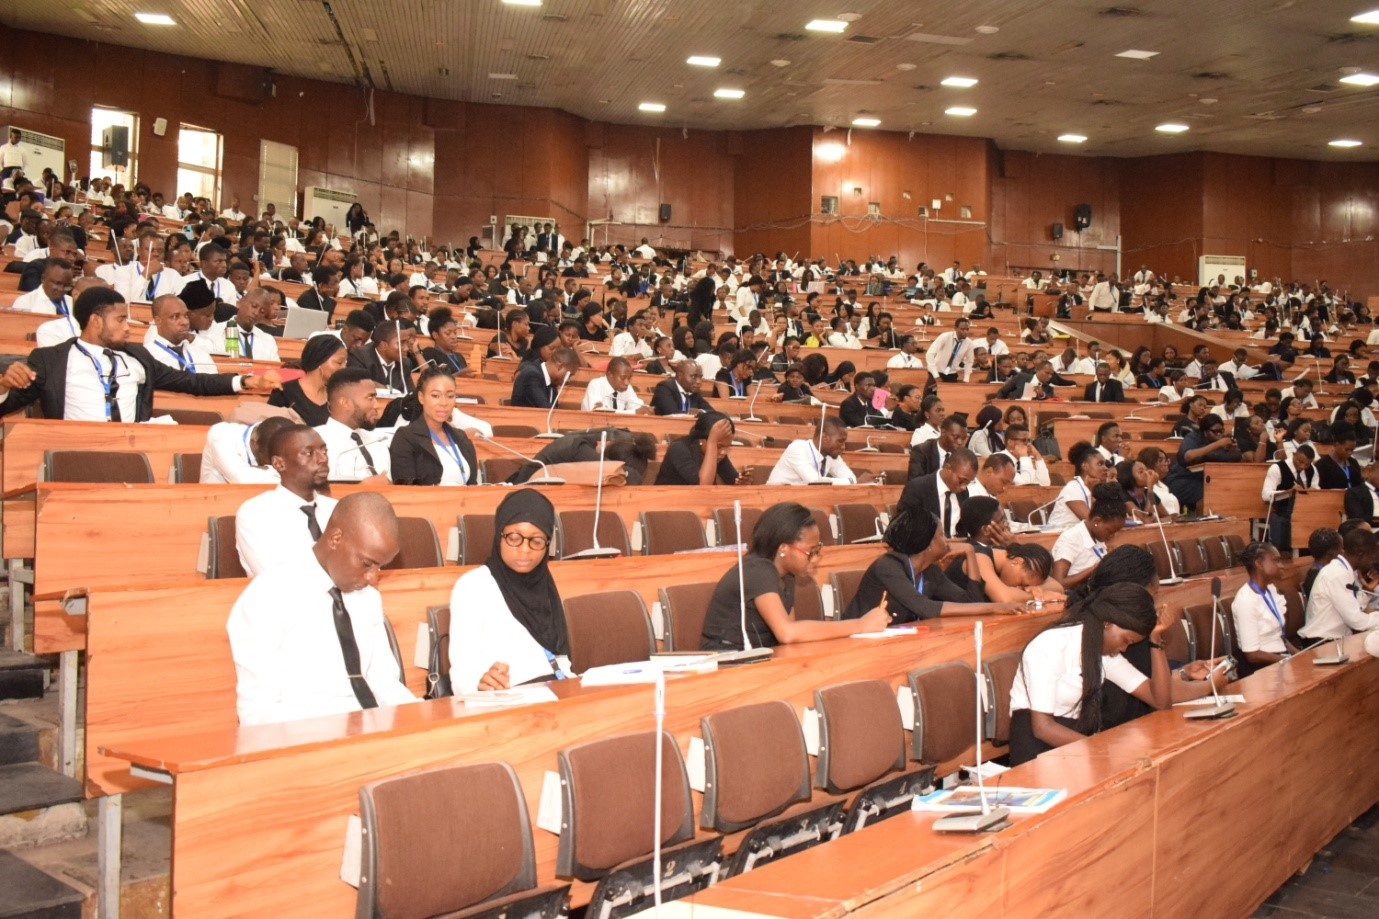 Cross-section of students and attendees